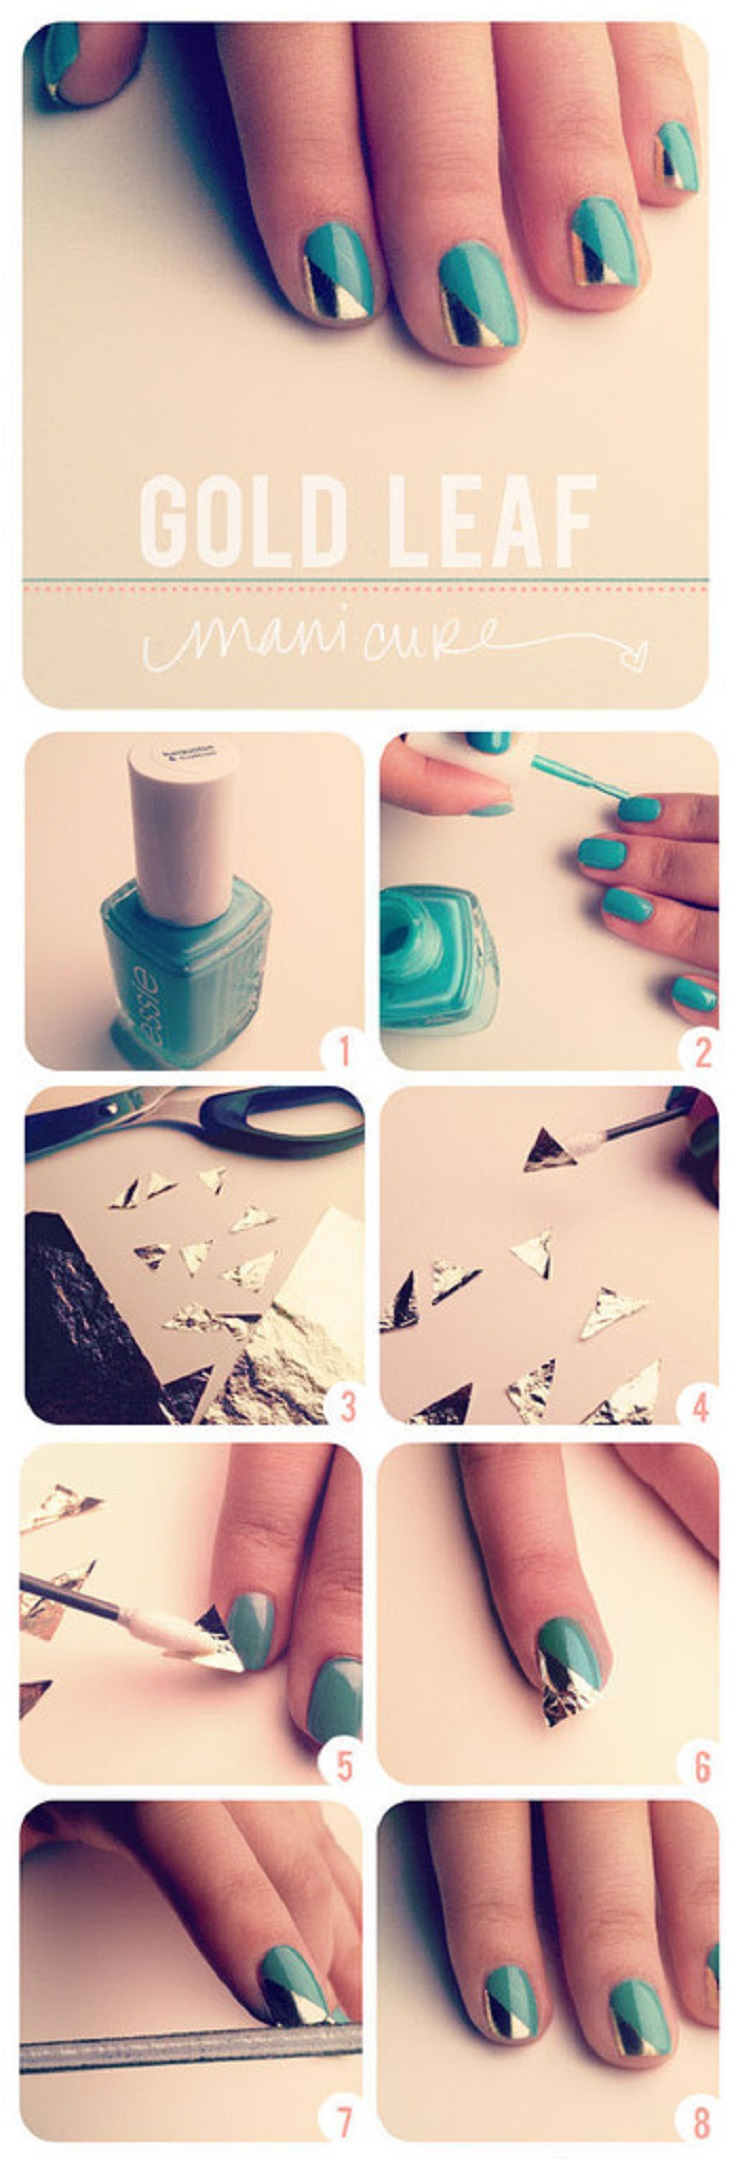 Top 10 Most Wanted Nail Art Tutorials | Top Inspired